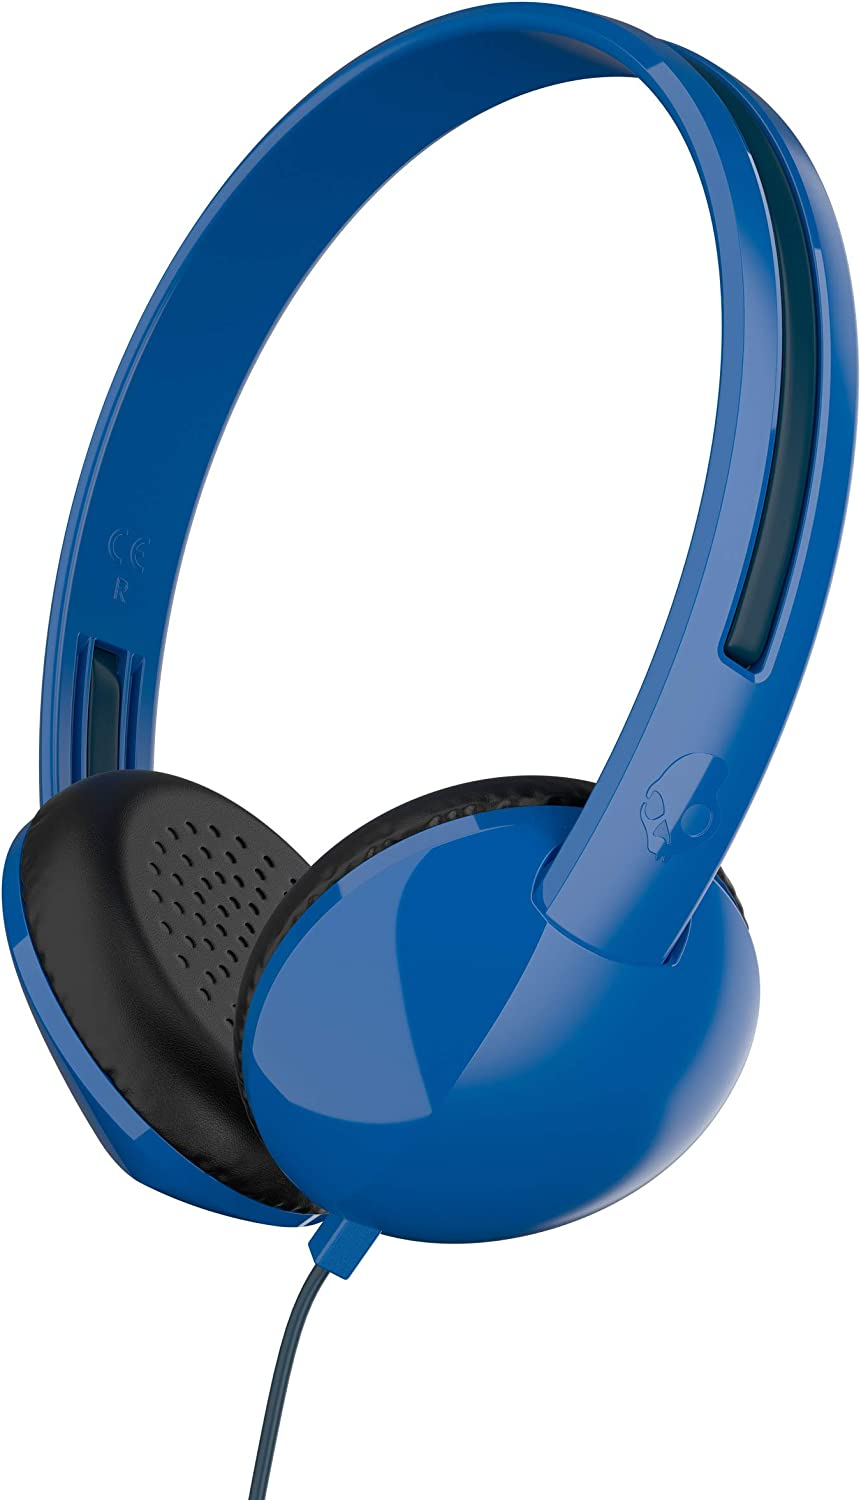 Skullcandy Stim On-Ear Headphones with Built-In Microphone and Remote, Supreme Sound Balanced Audio, Lightweight Design for Comfortable Fit, Blue